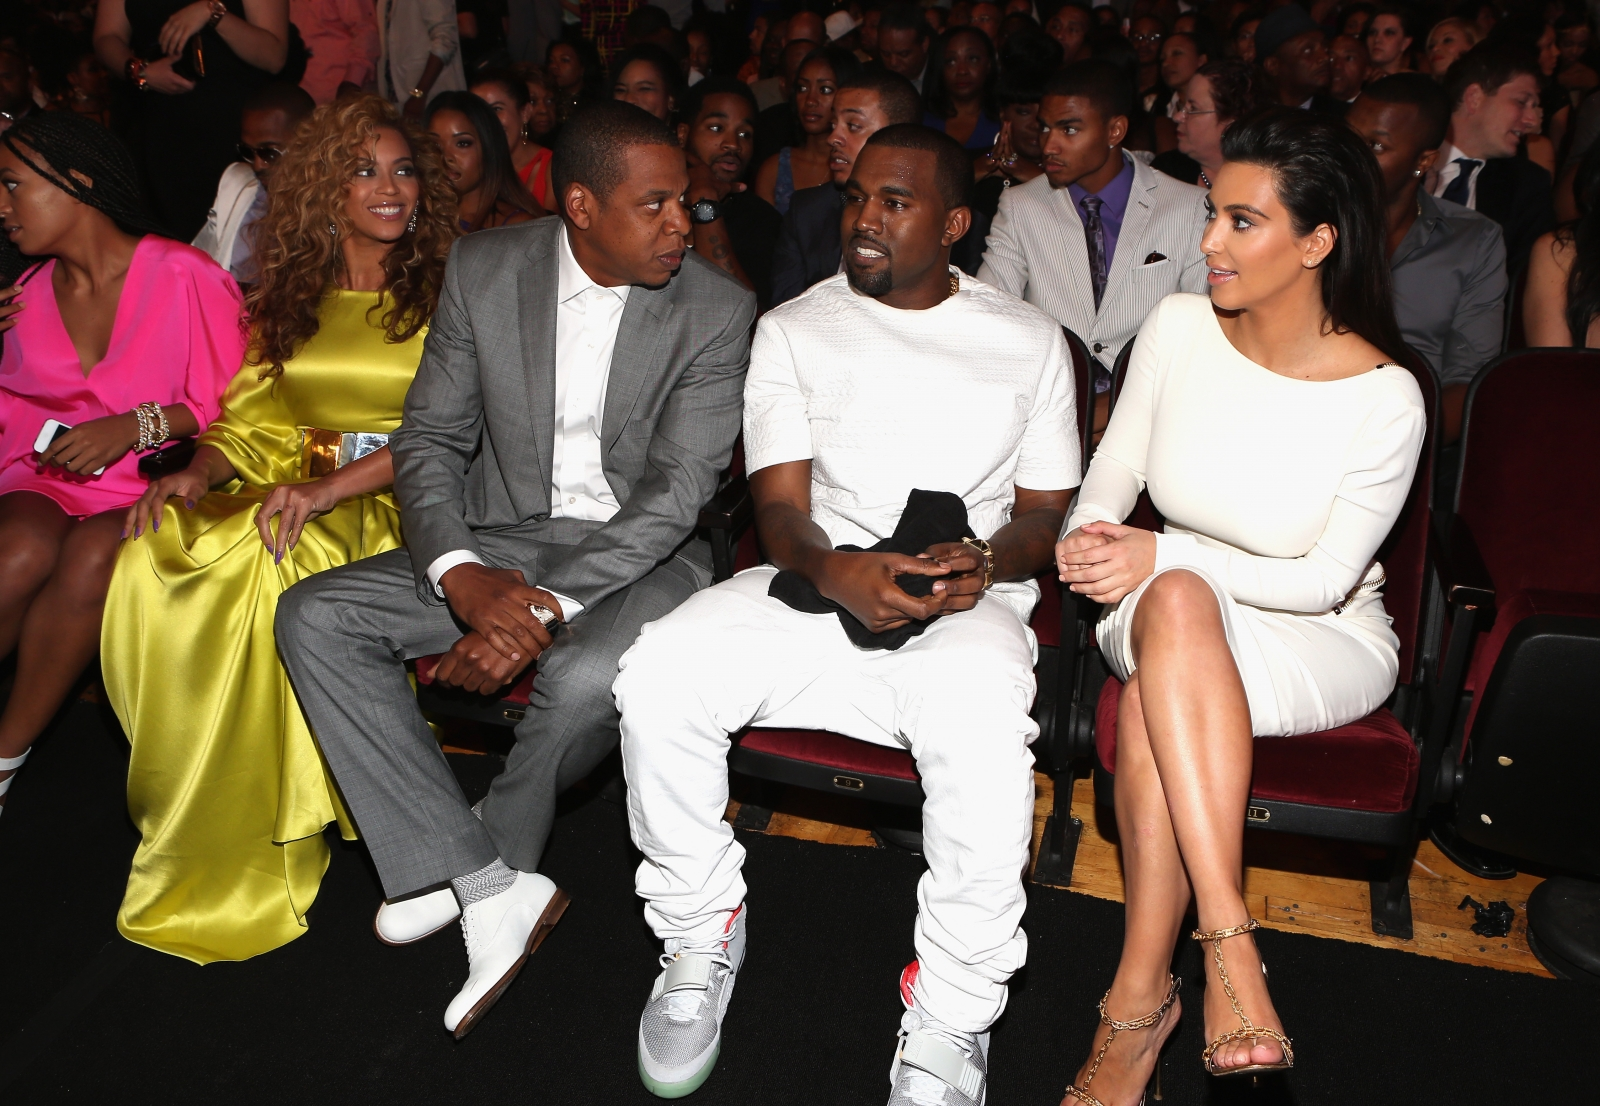 Beyonce and Kanye West feud